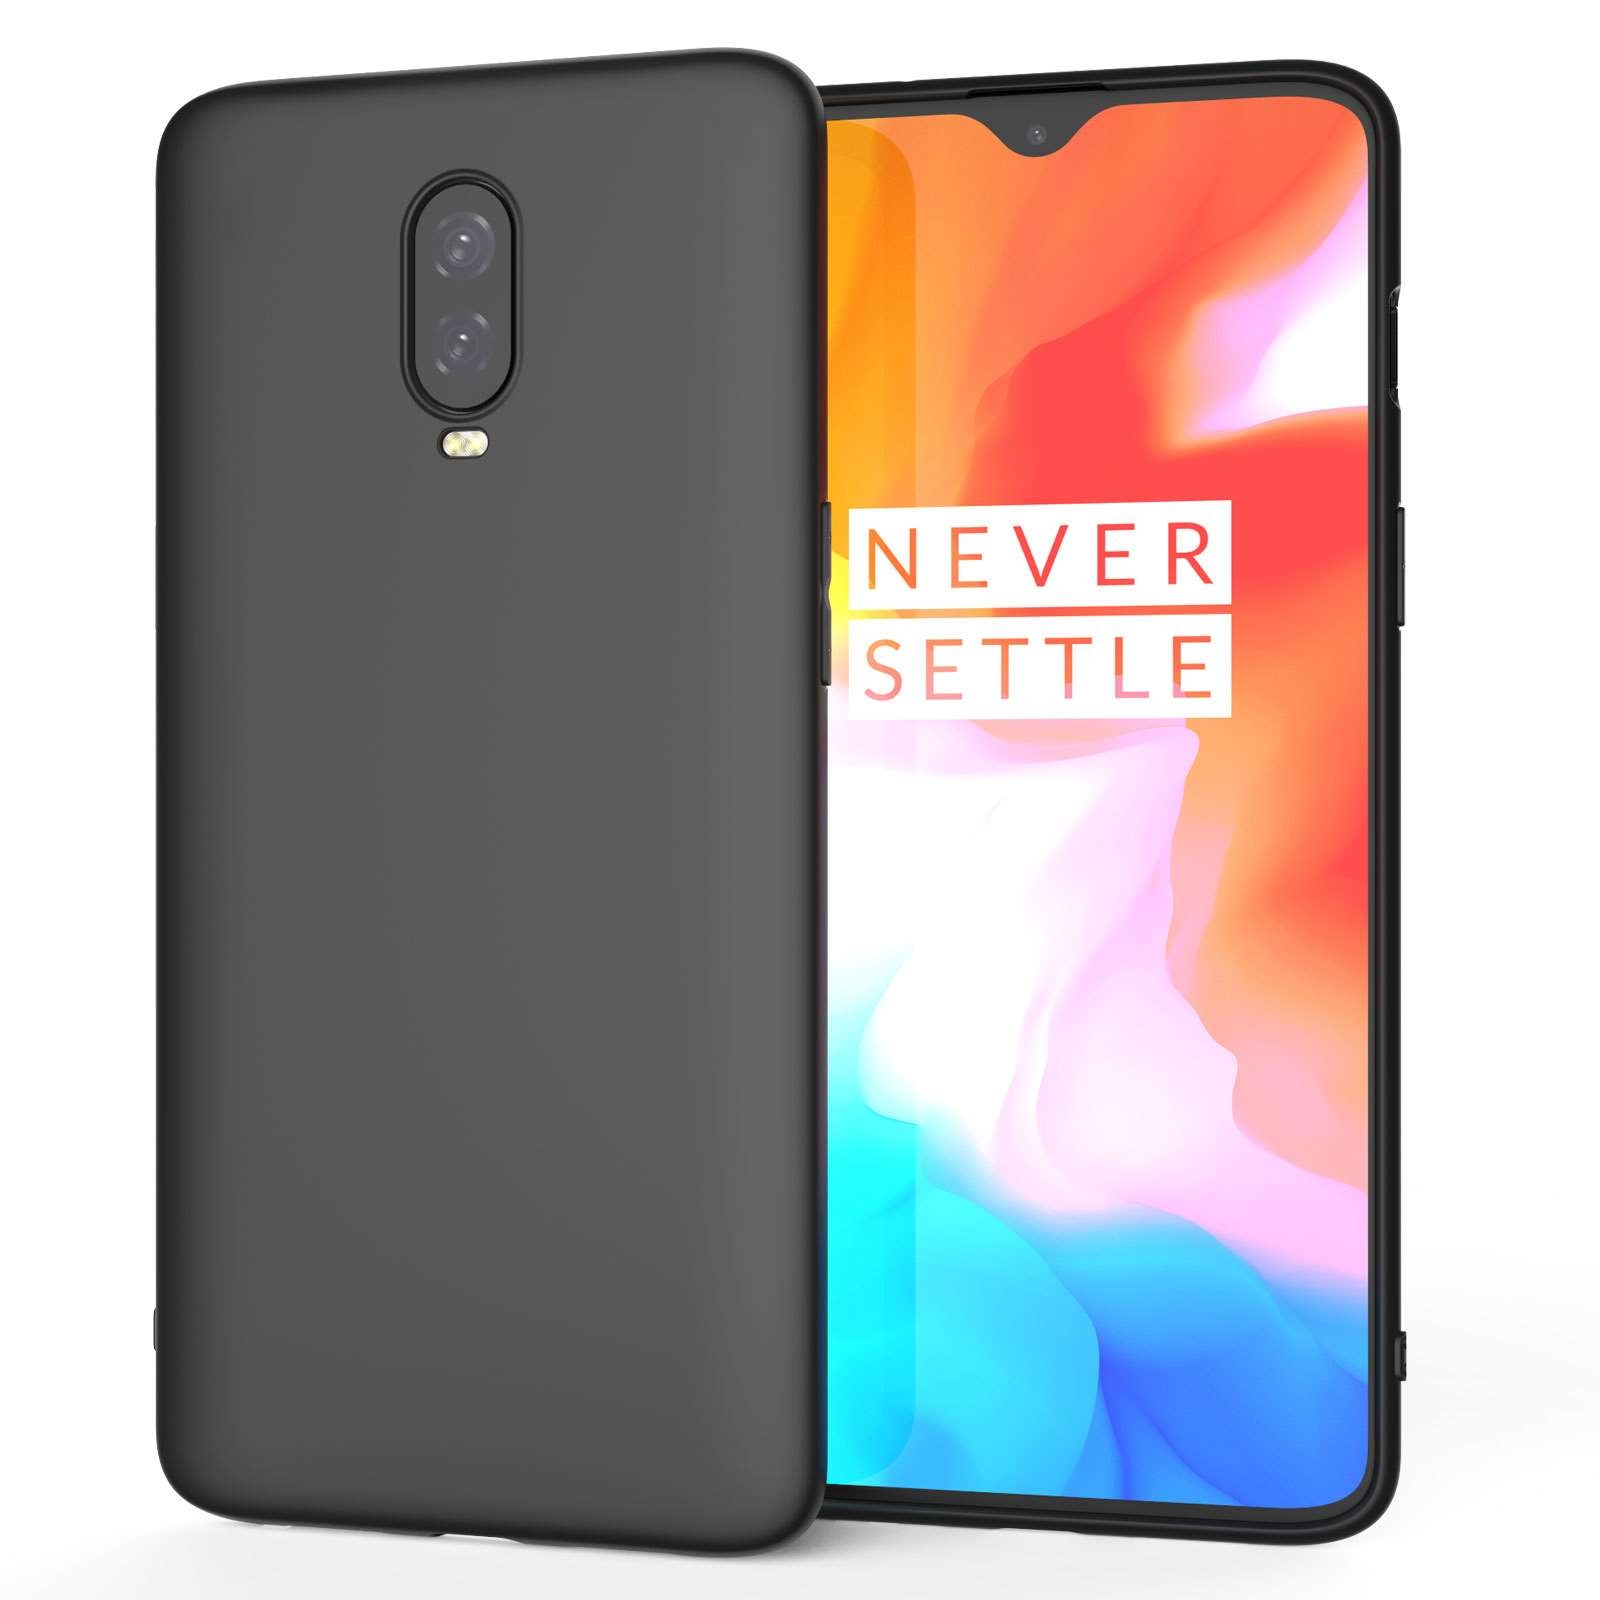 Caseflex Θήκη Σιλικόνης Oneplus 6T - Black (CS000012ON)